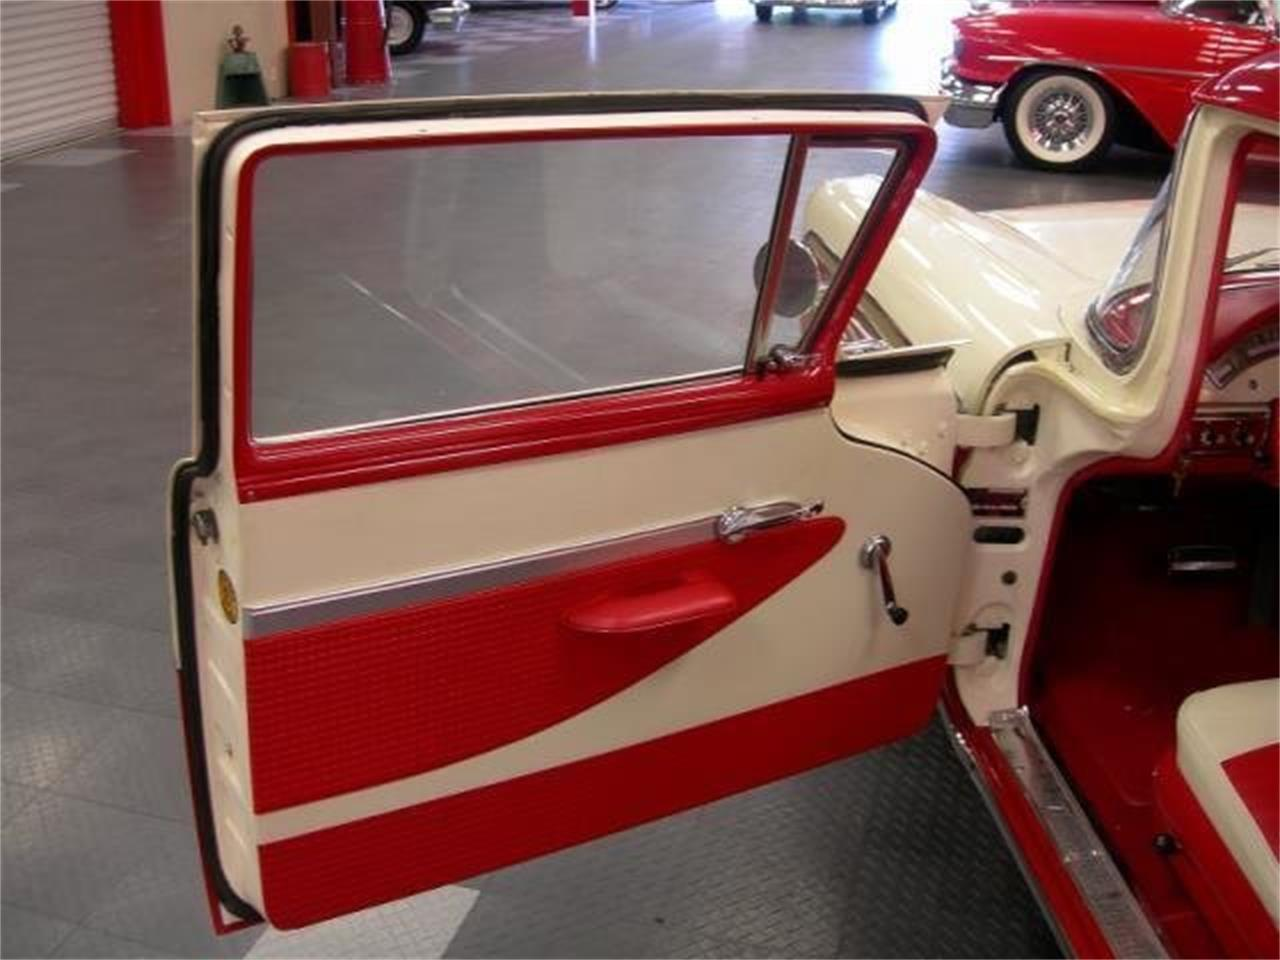 Large Picture of 1957 Ford Ranchero located in Dothan Alabama - $49,995.00 Offered by Auto Investors - MXBH